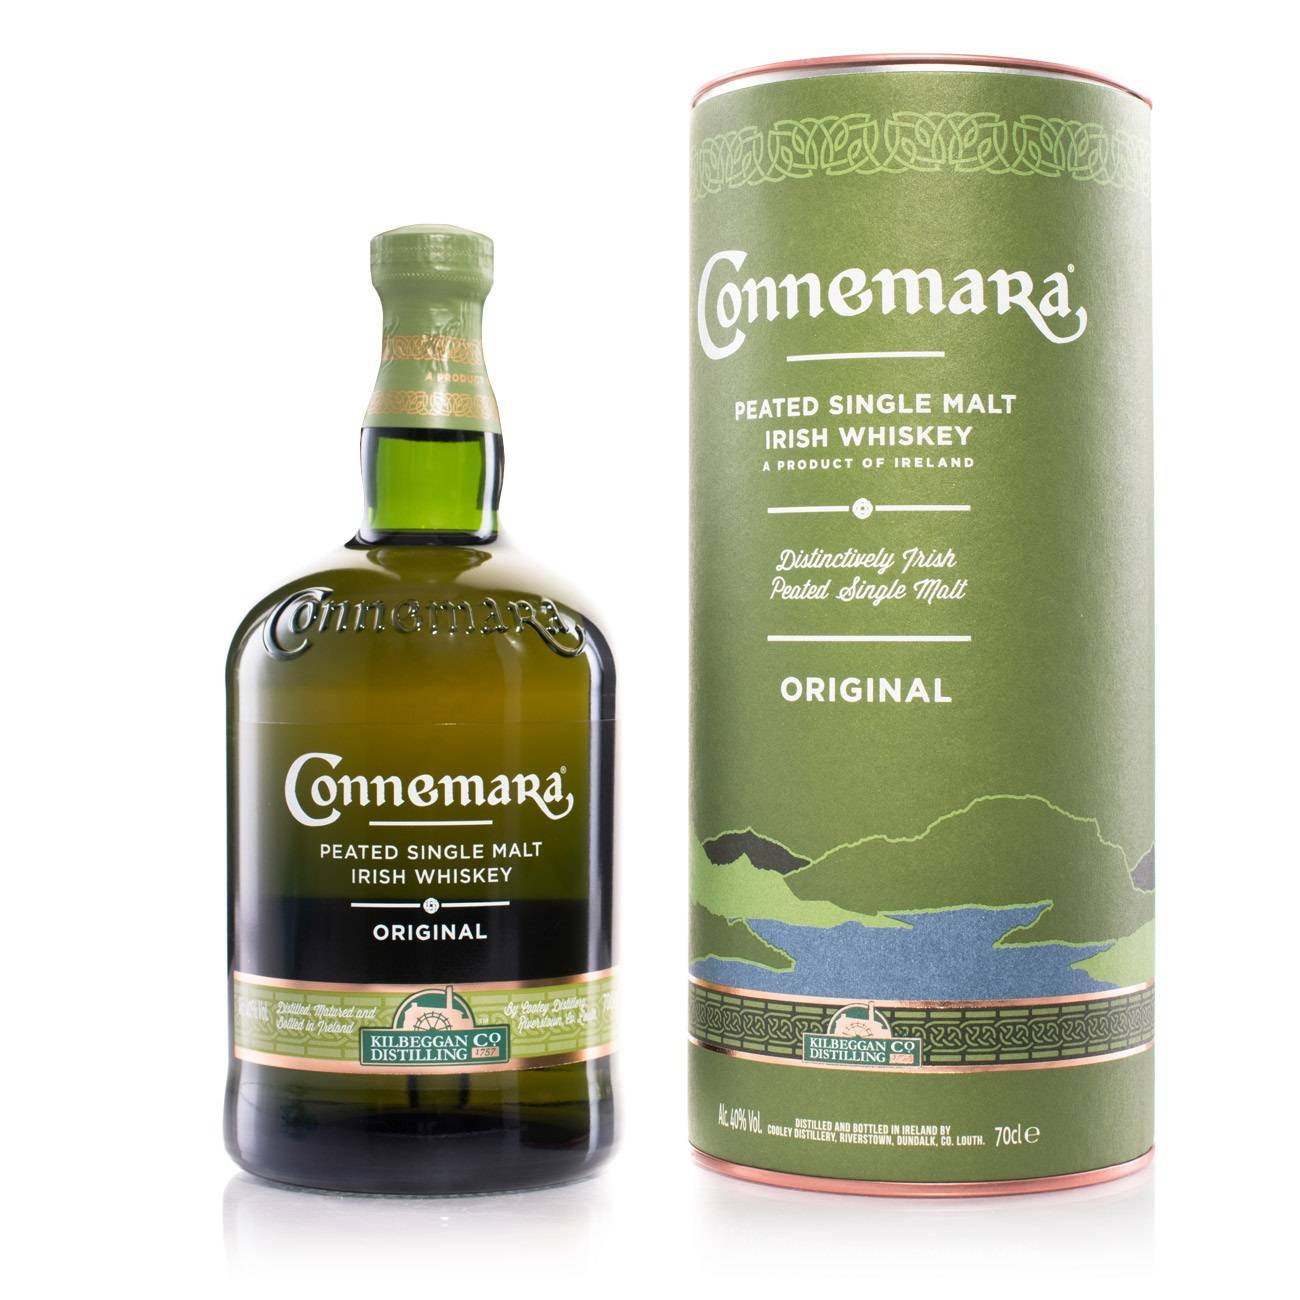 Whisky irlandez, ORIGINAL PEATED 700 Ml, Connemara